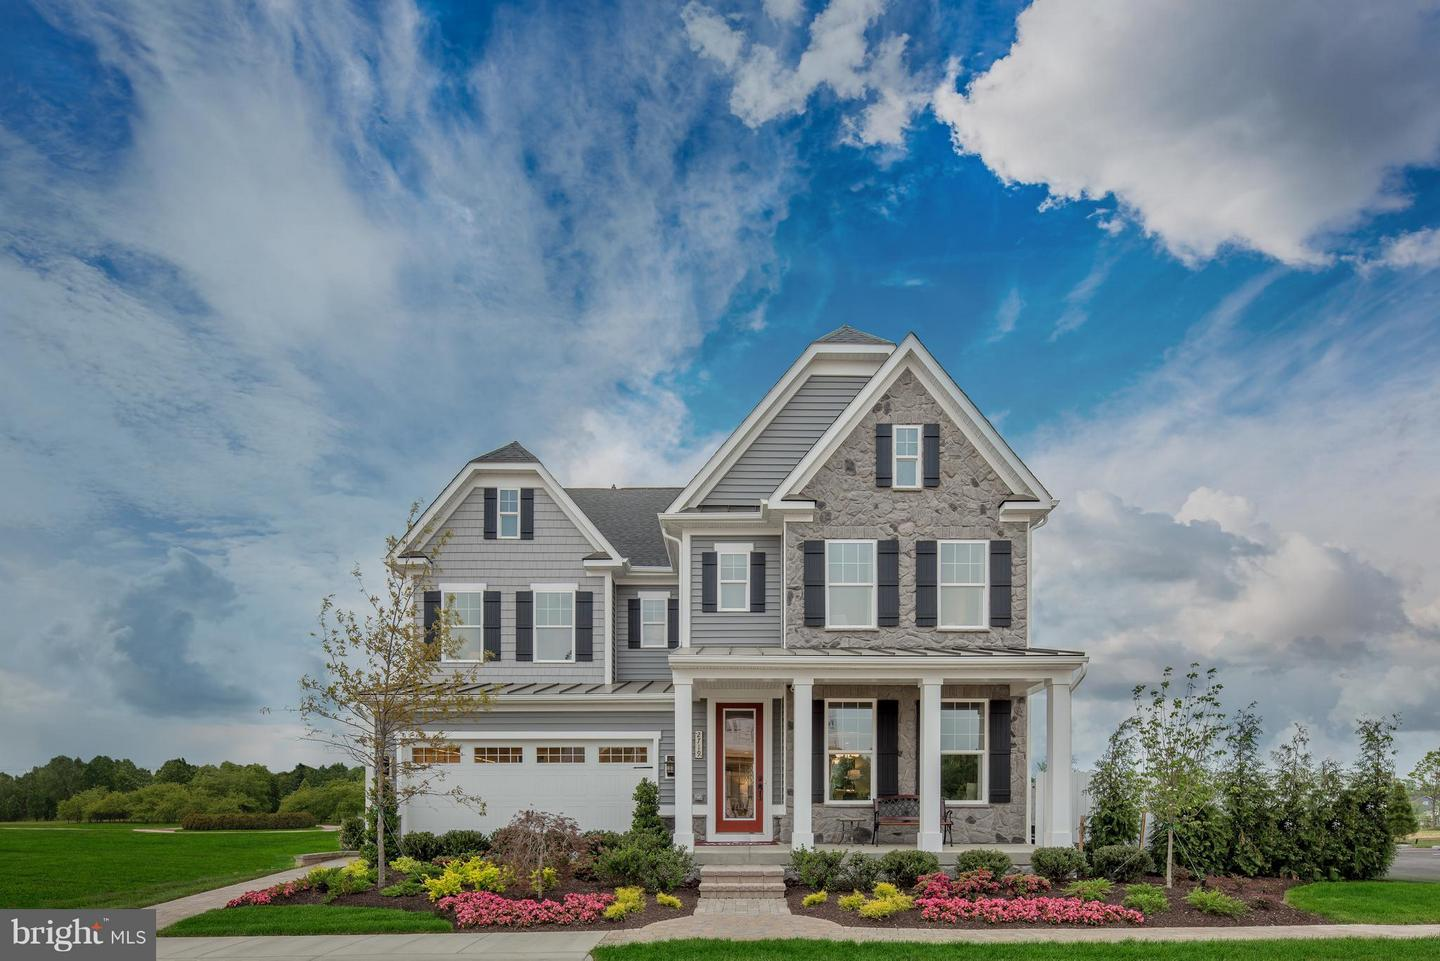 2629 ORCHARD ORIOLE WAY, ODENTON, Maryland